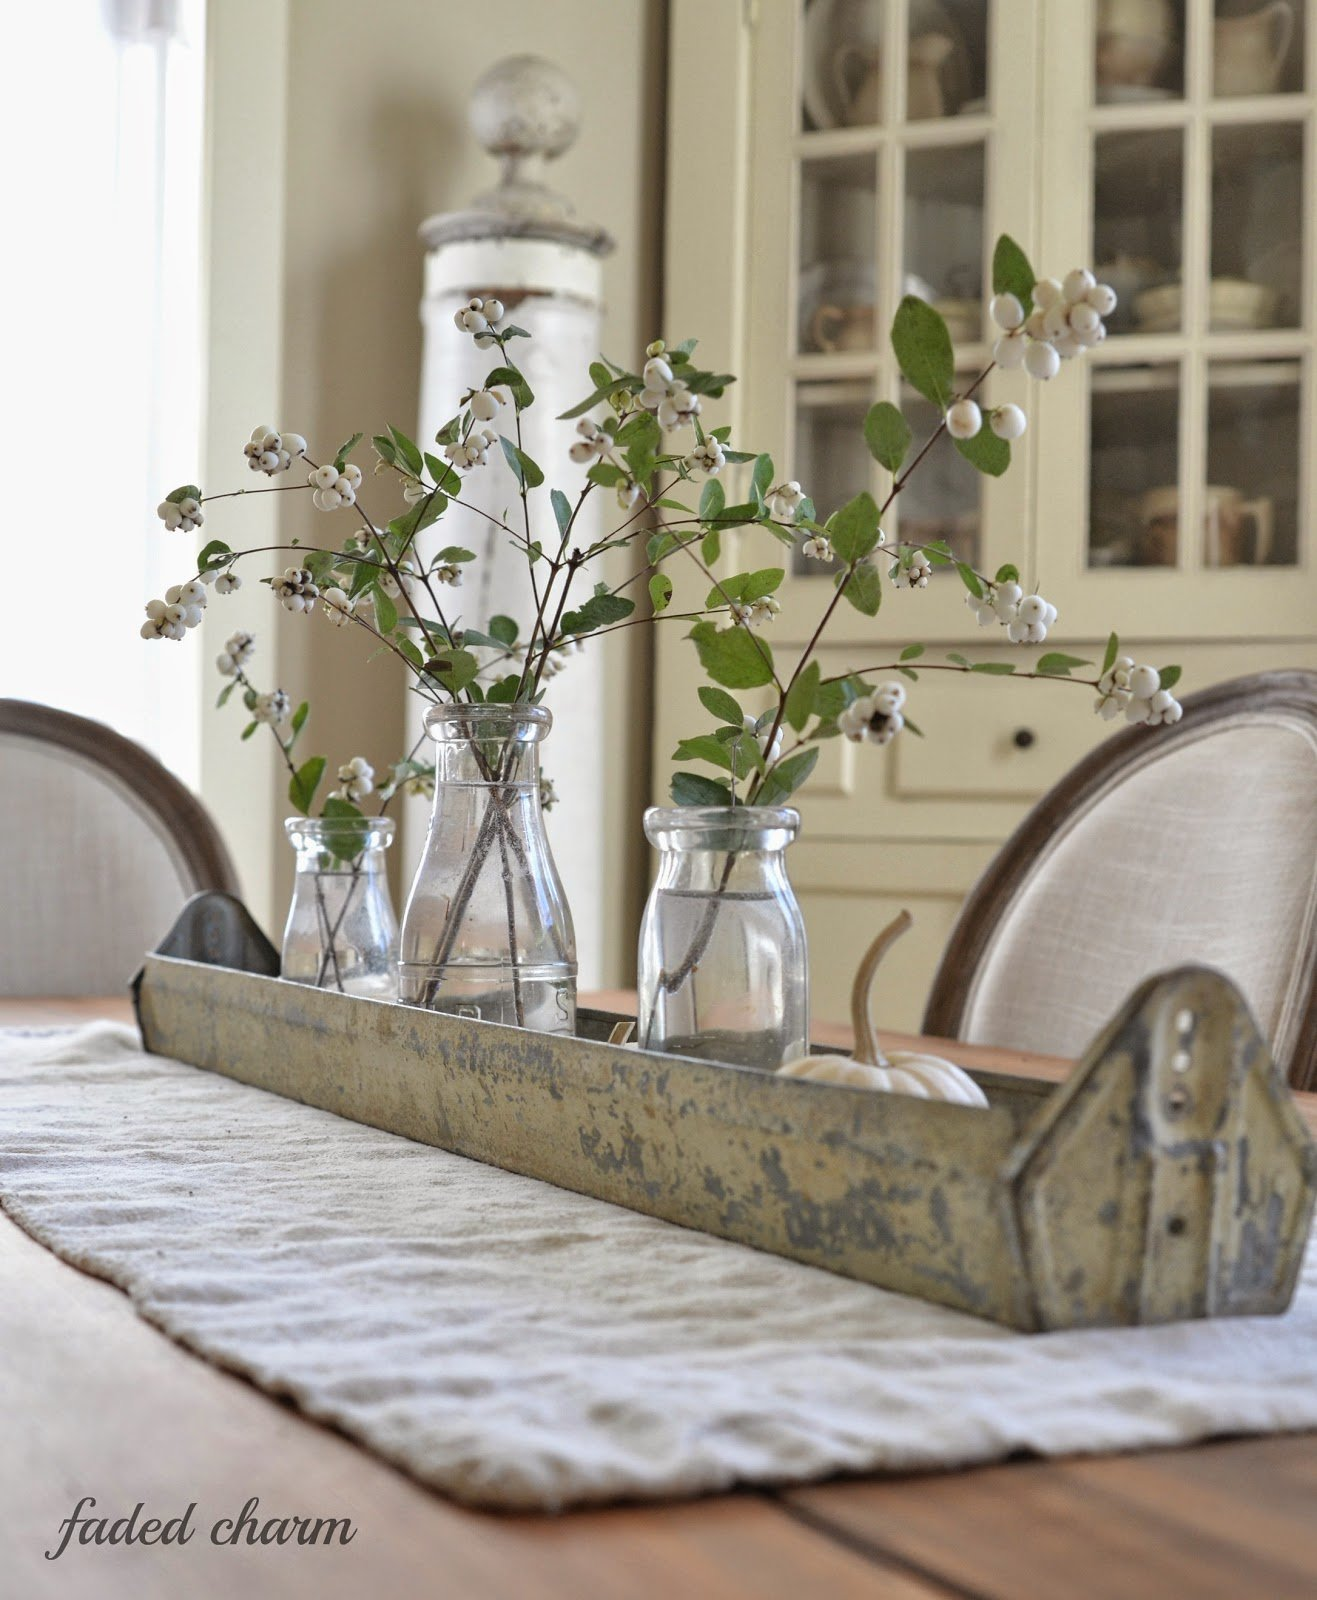 Dining table decor for an everyday look tidbits twine for Table centerpieces for dining table